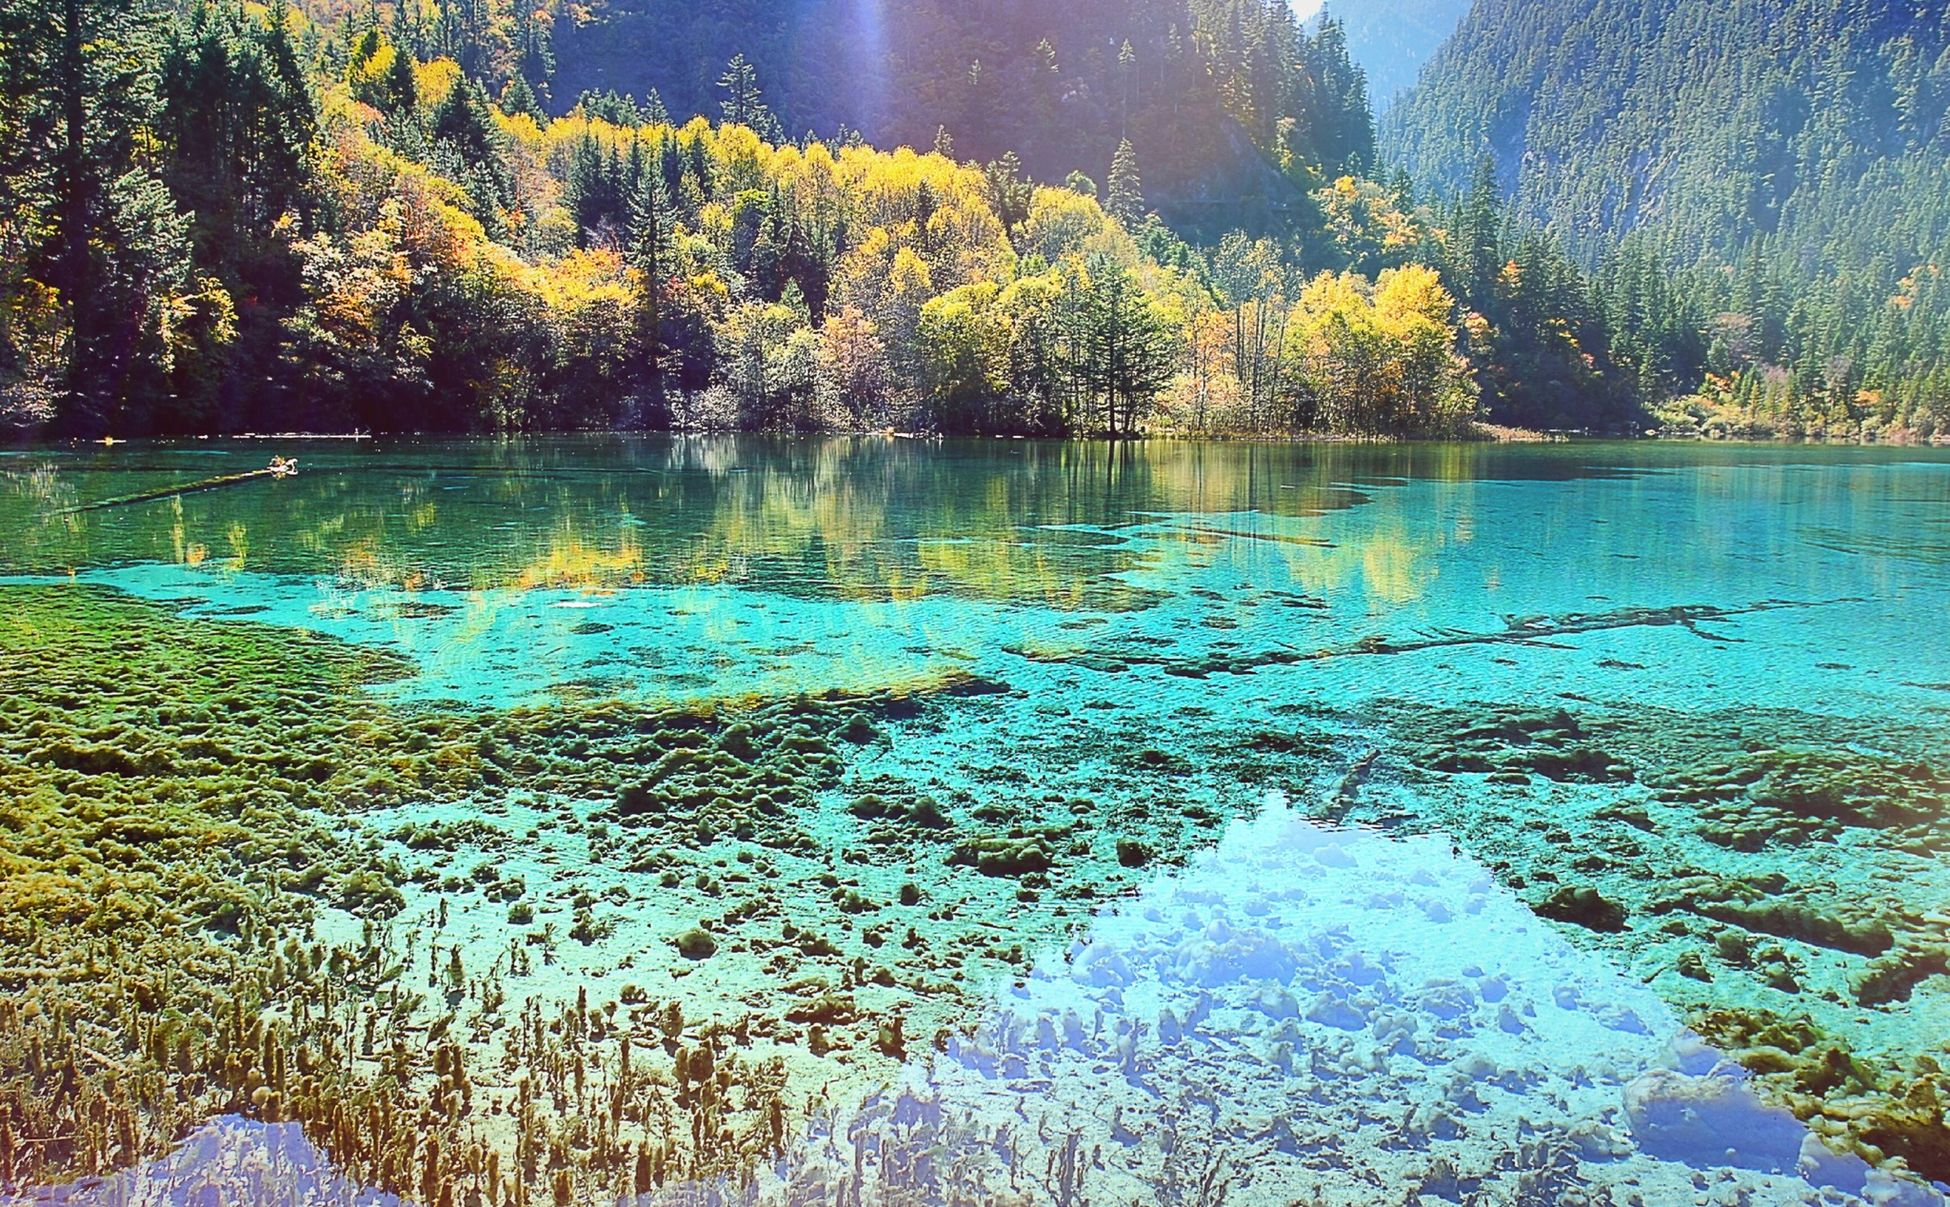 My father took this photo. Oct.21st~Oct.23rd 九寨沟 Jiuzhaigou Valley Scenic And Historic Interest Area 2014